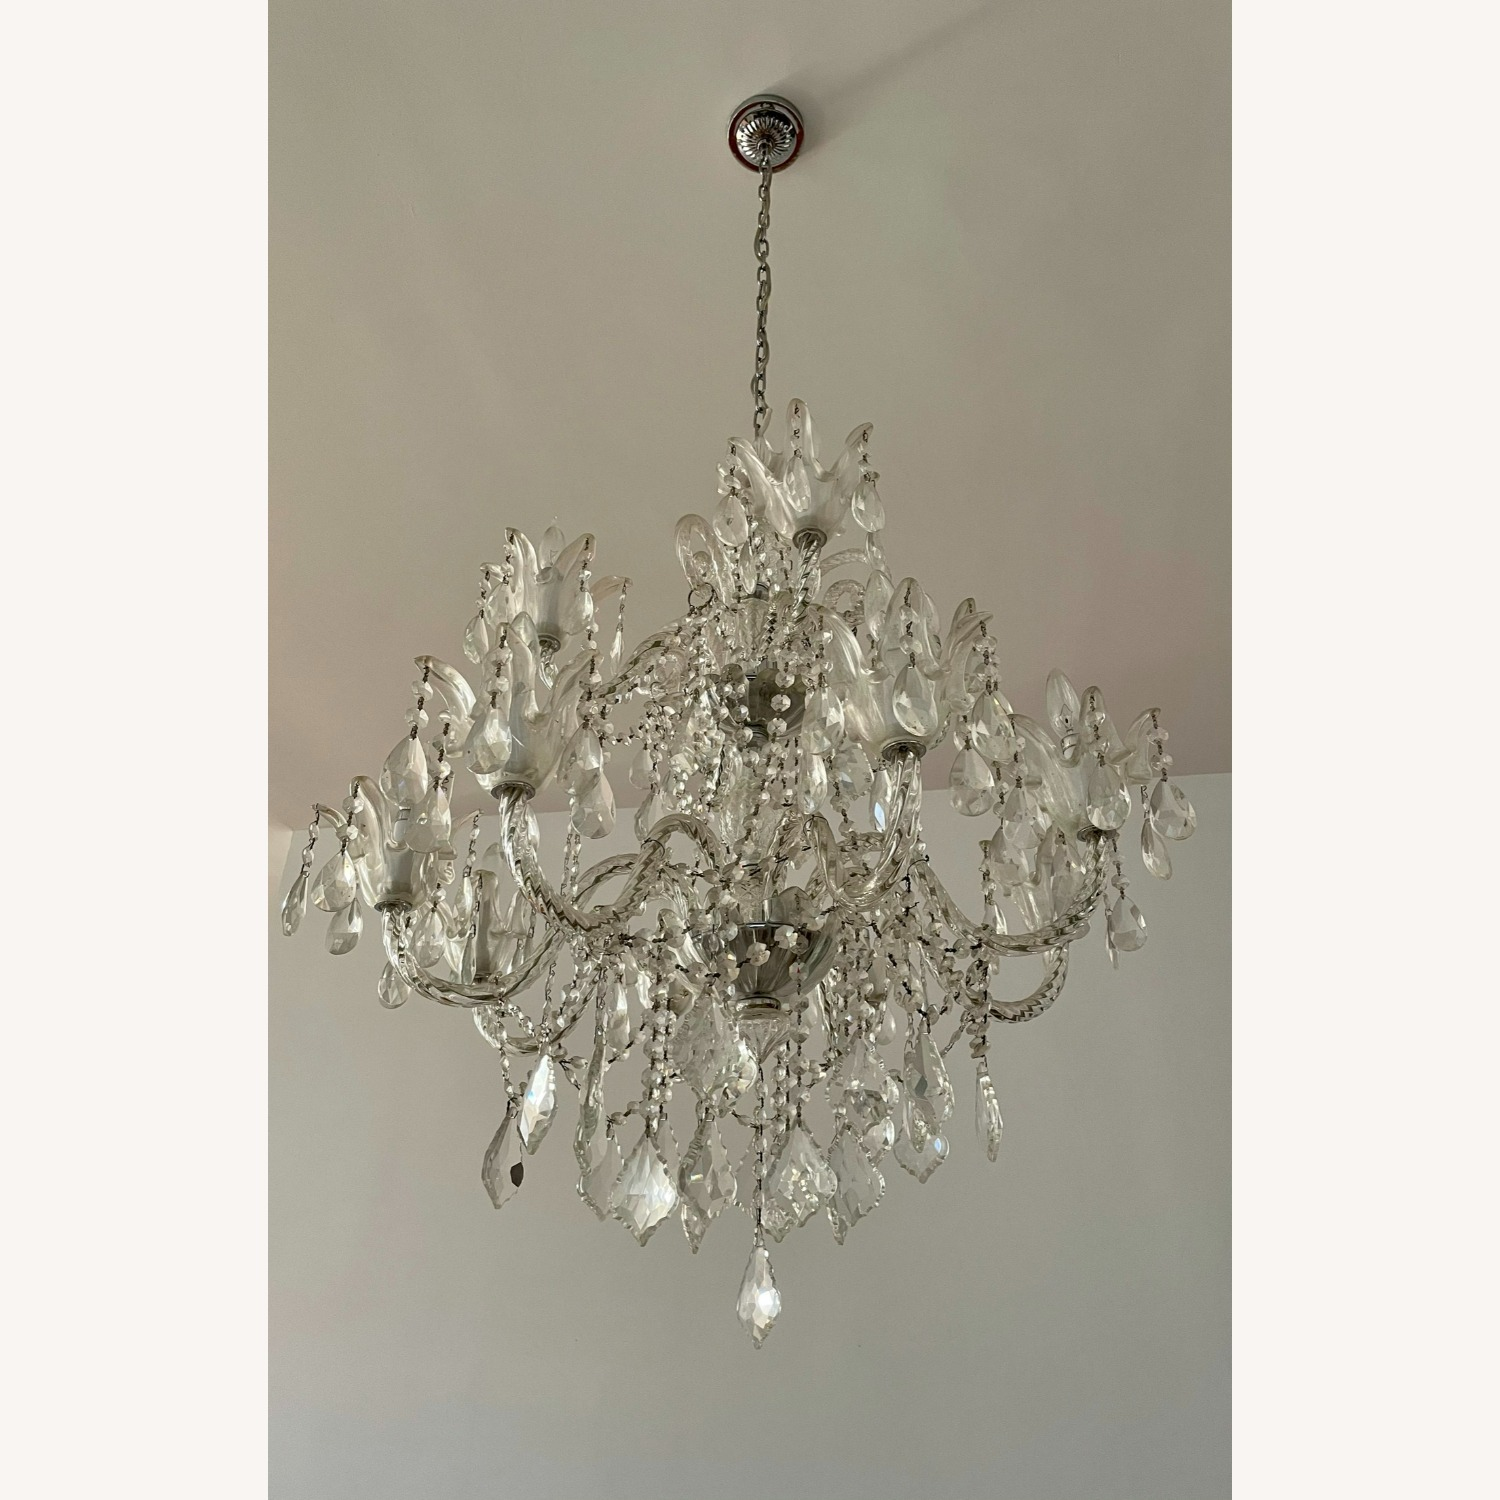 X-Large 12 Bulb Crystal 2-Tier Chandelier - image-9